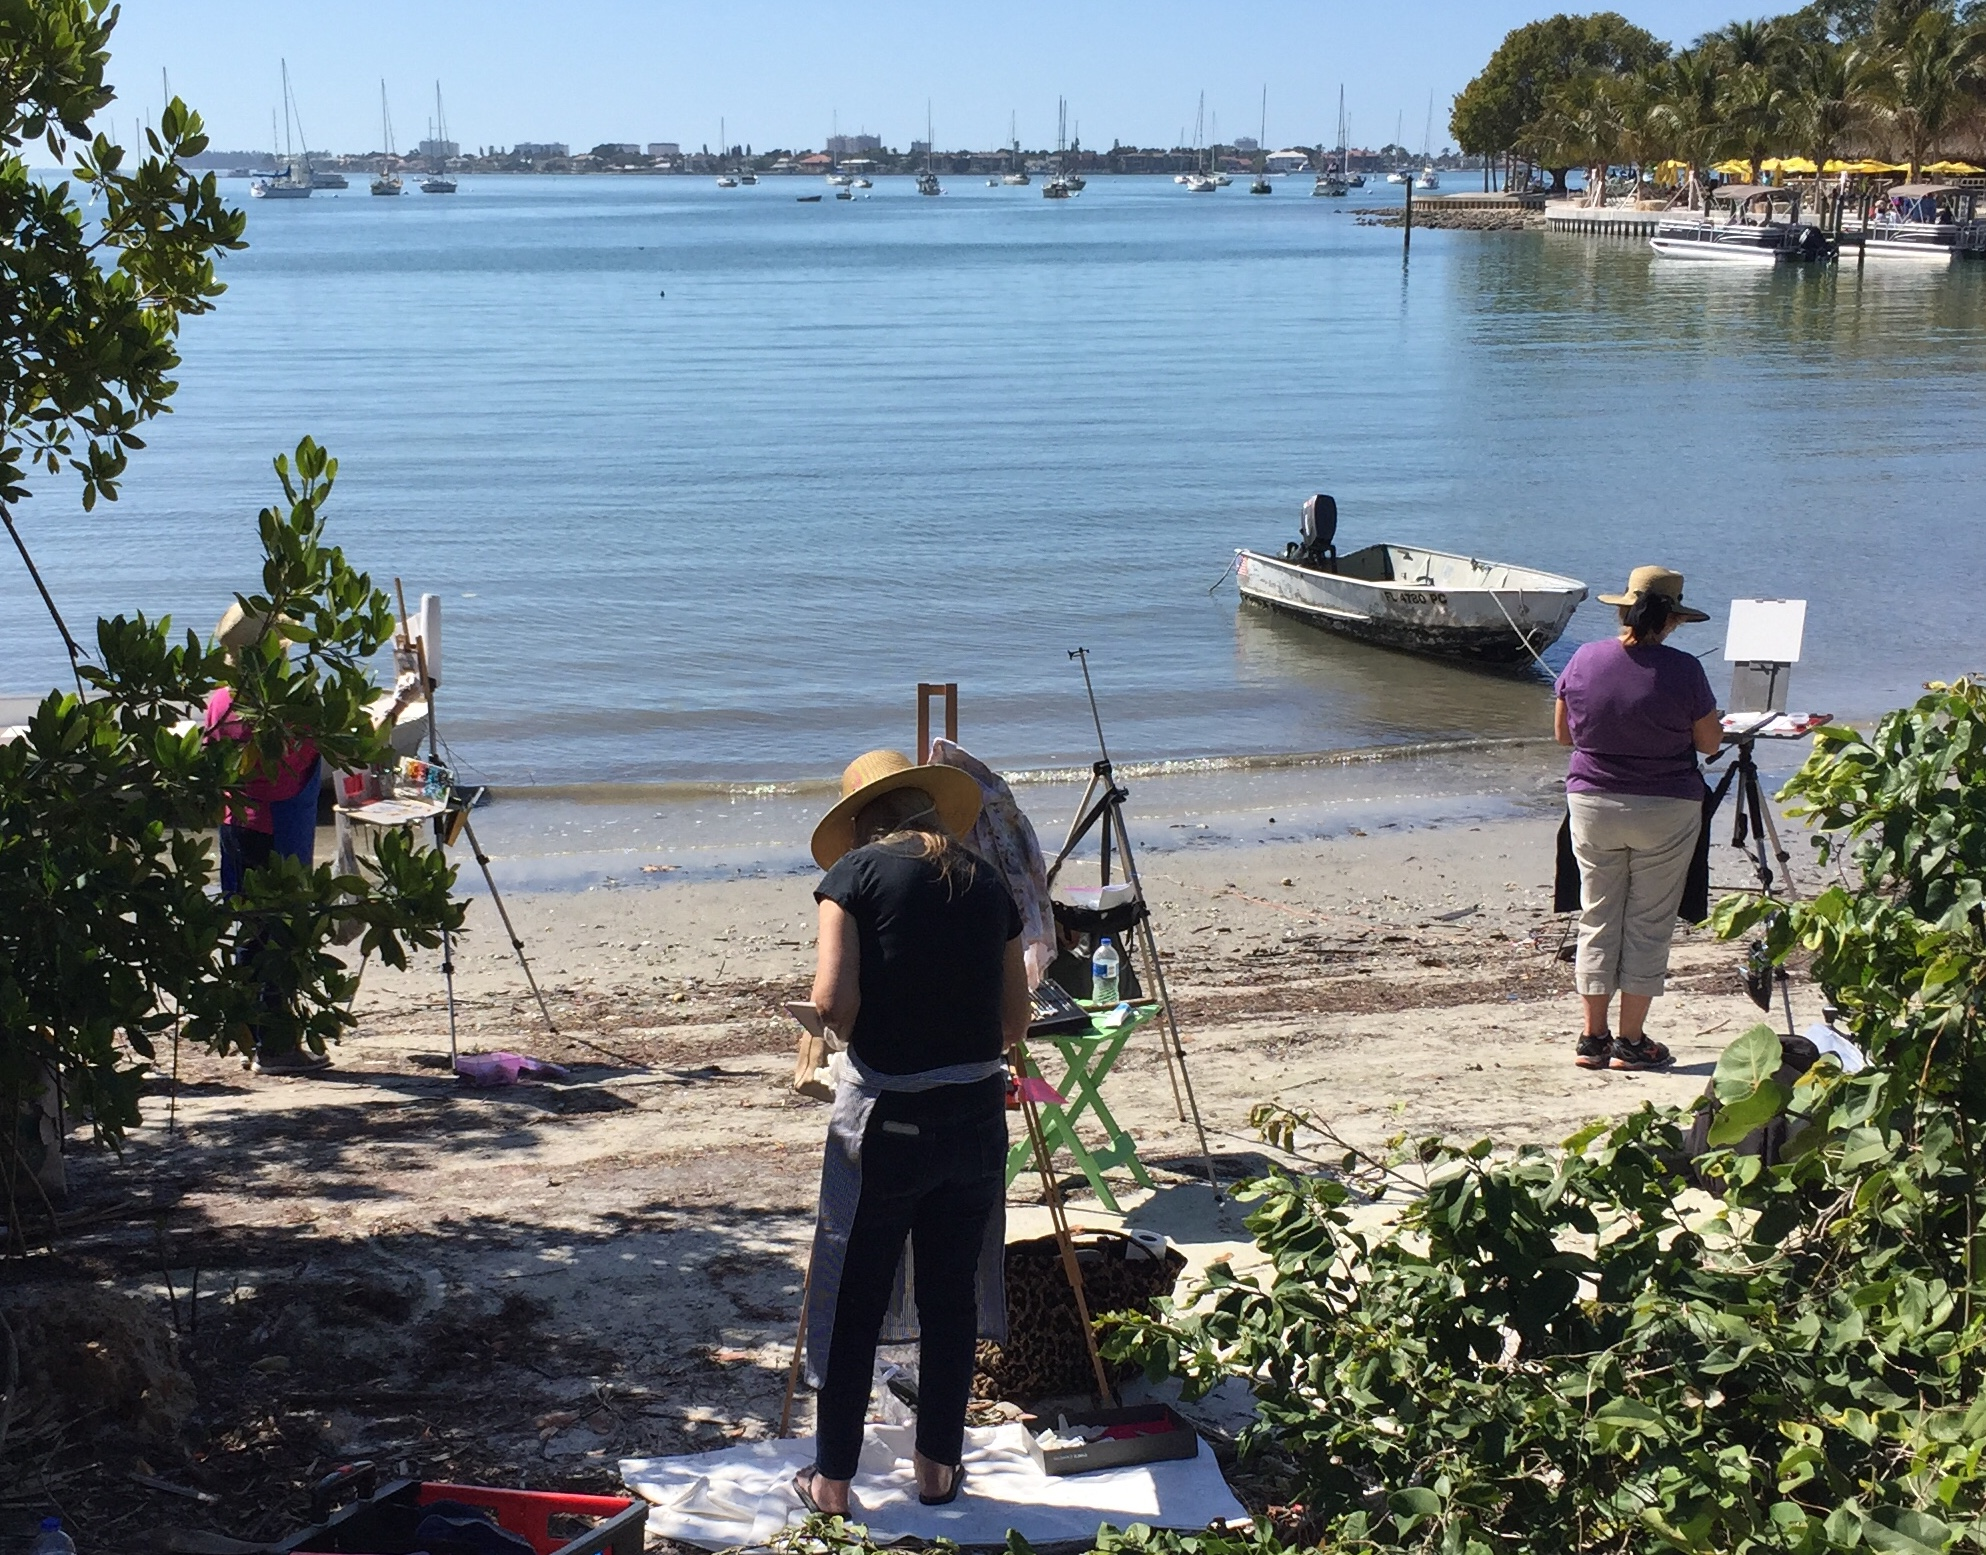 Paint by the Gulf of Mexico with assistance from Linda after a demo.